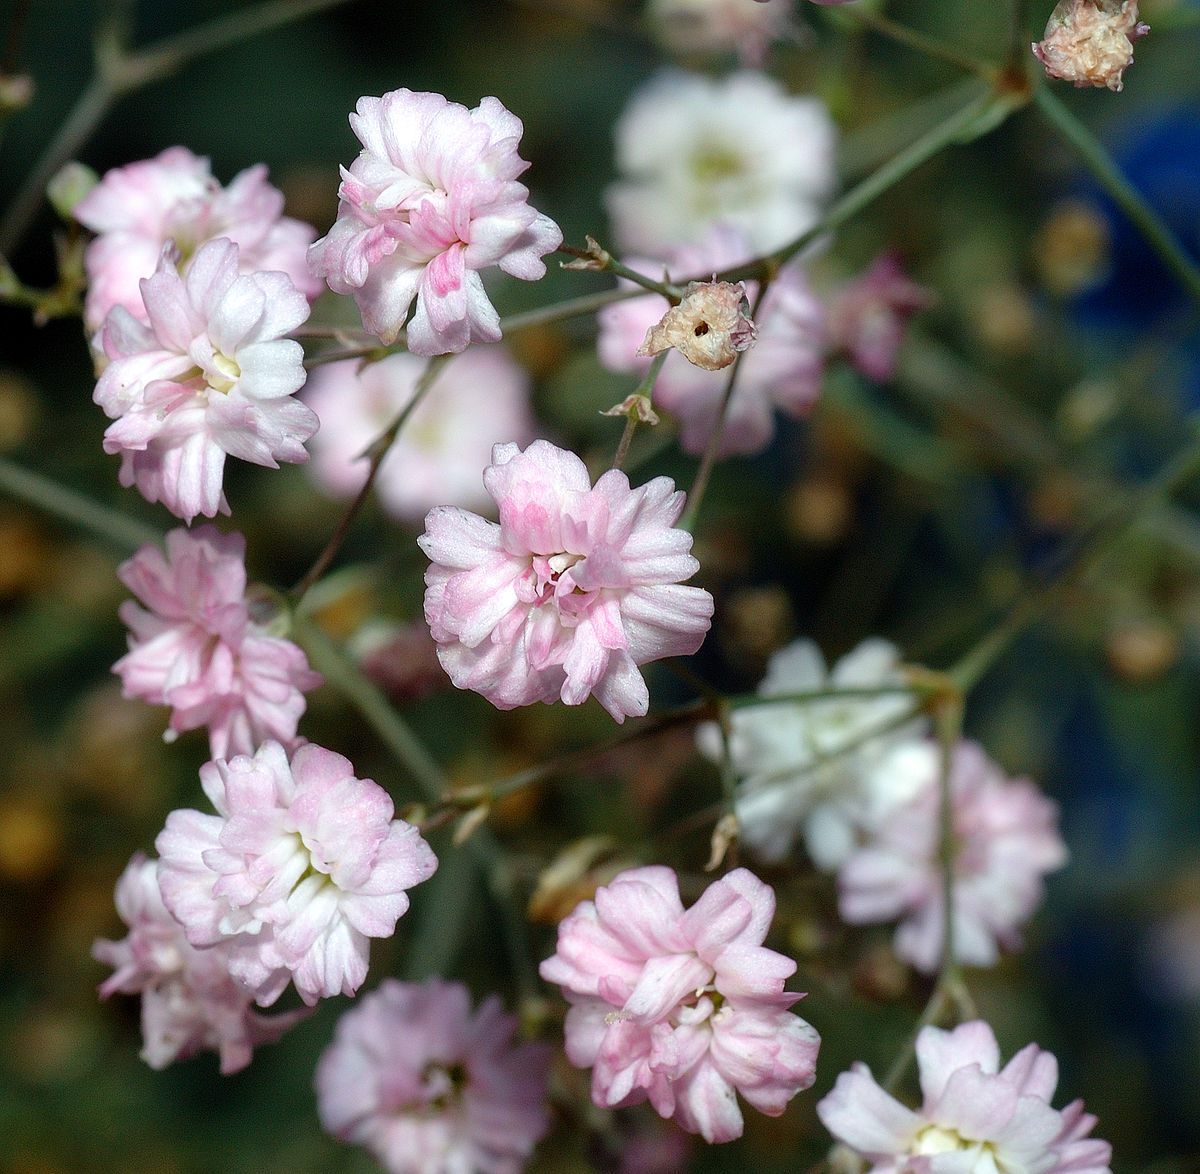 Gypsophila - Wikipedia